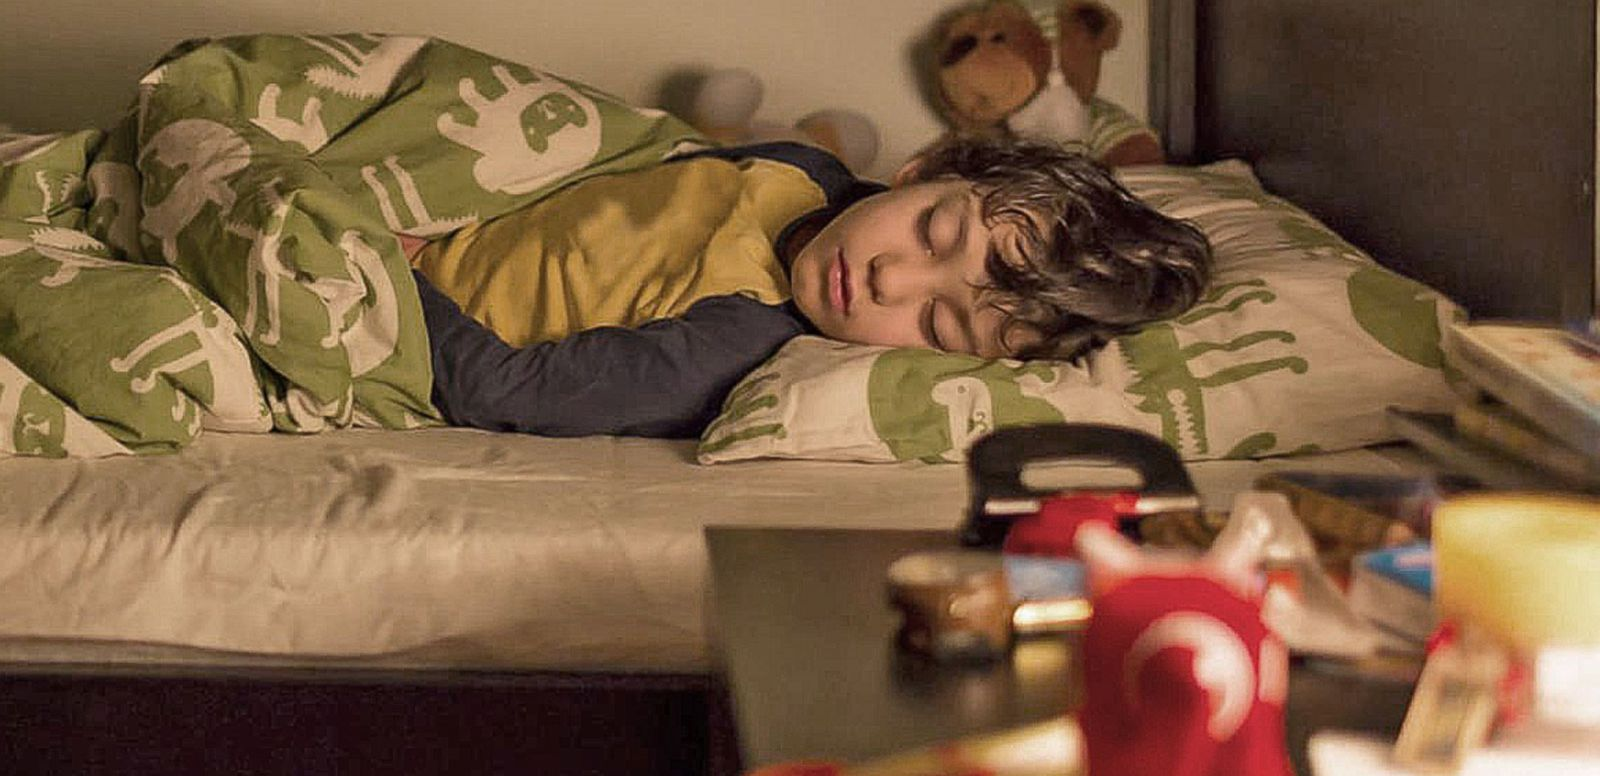 VIDEO: New Strategies to Get Your Child to Sleep